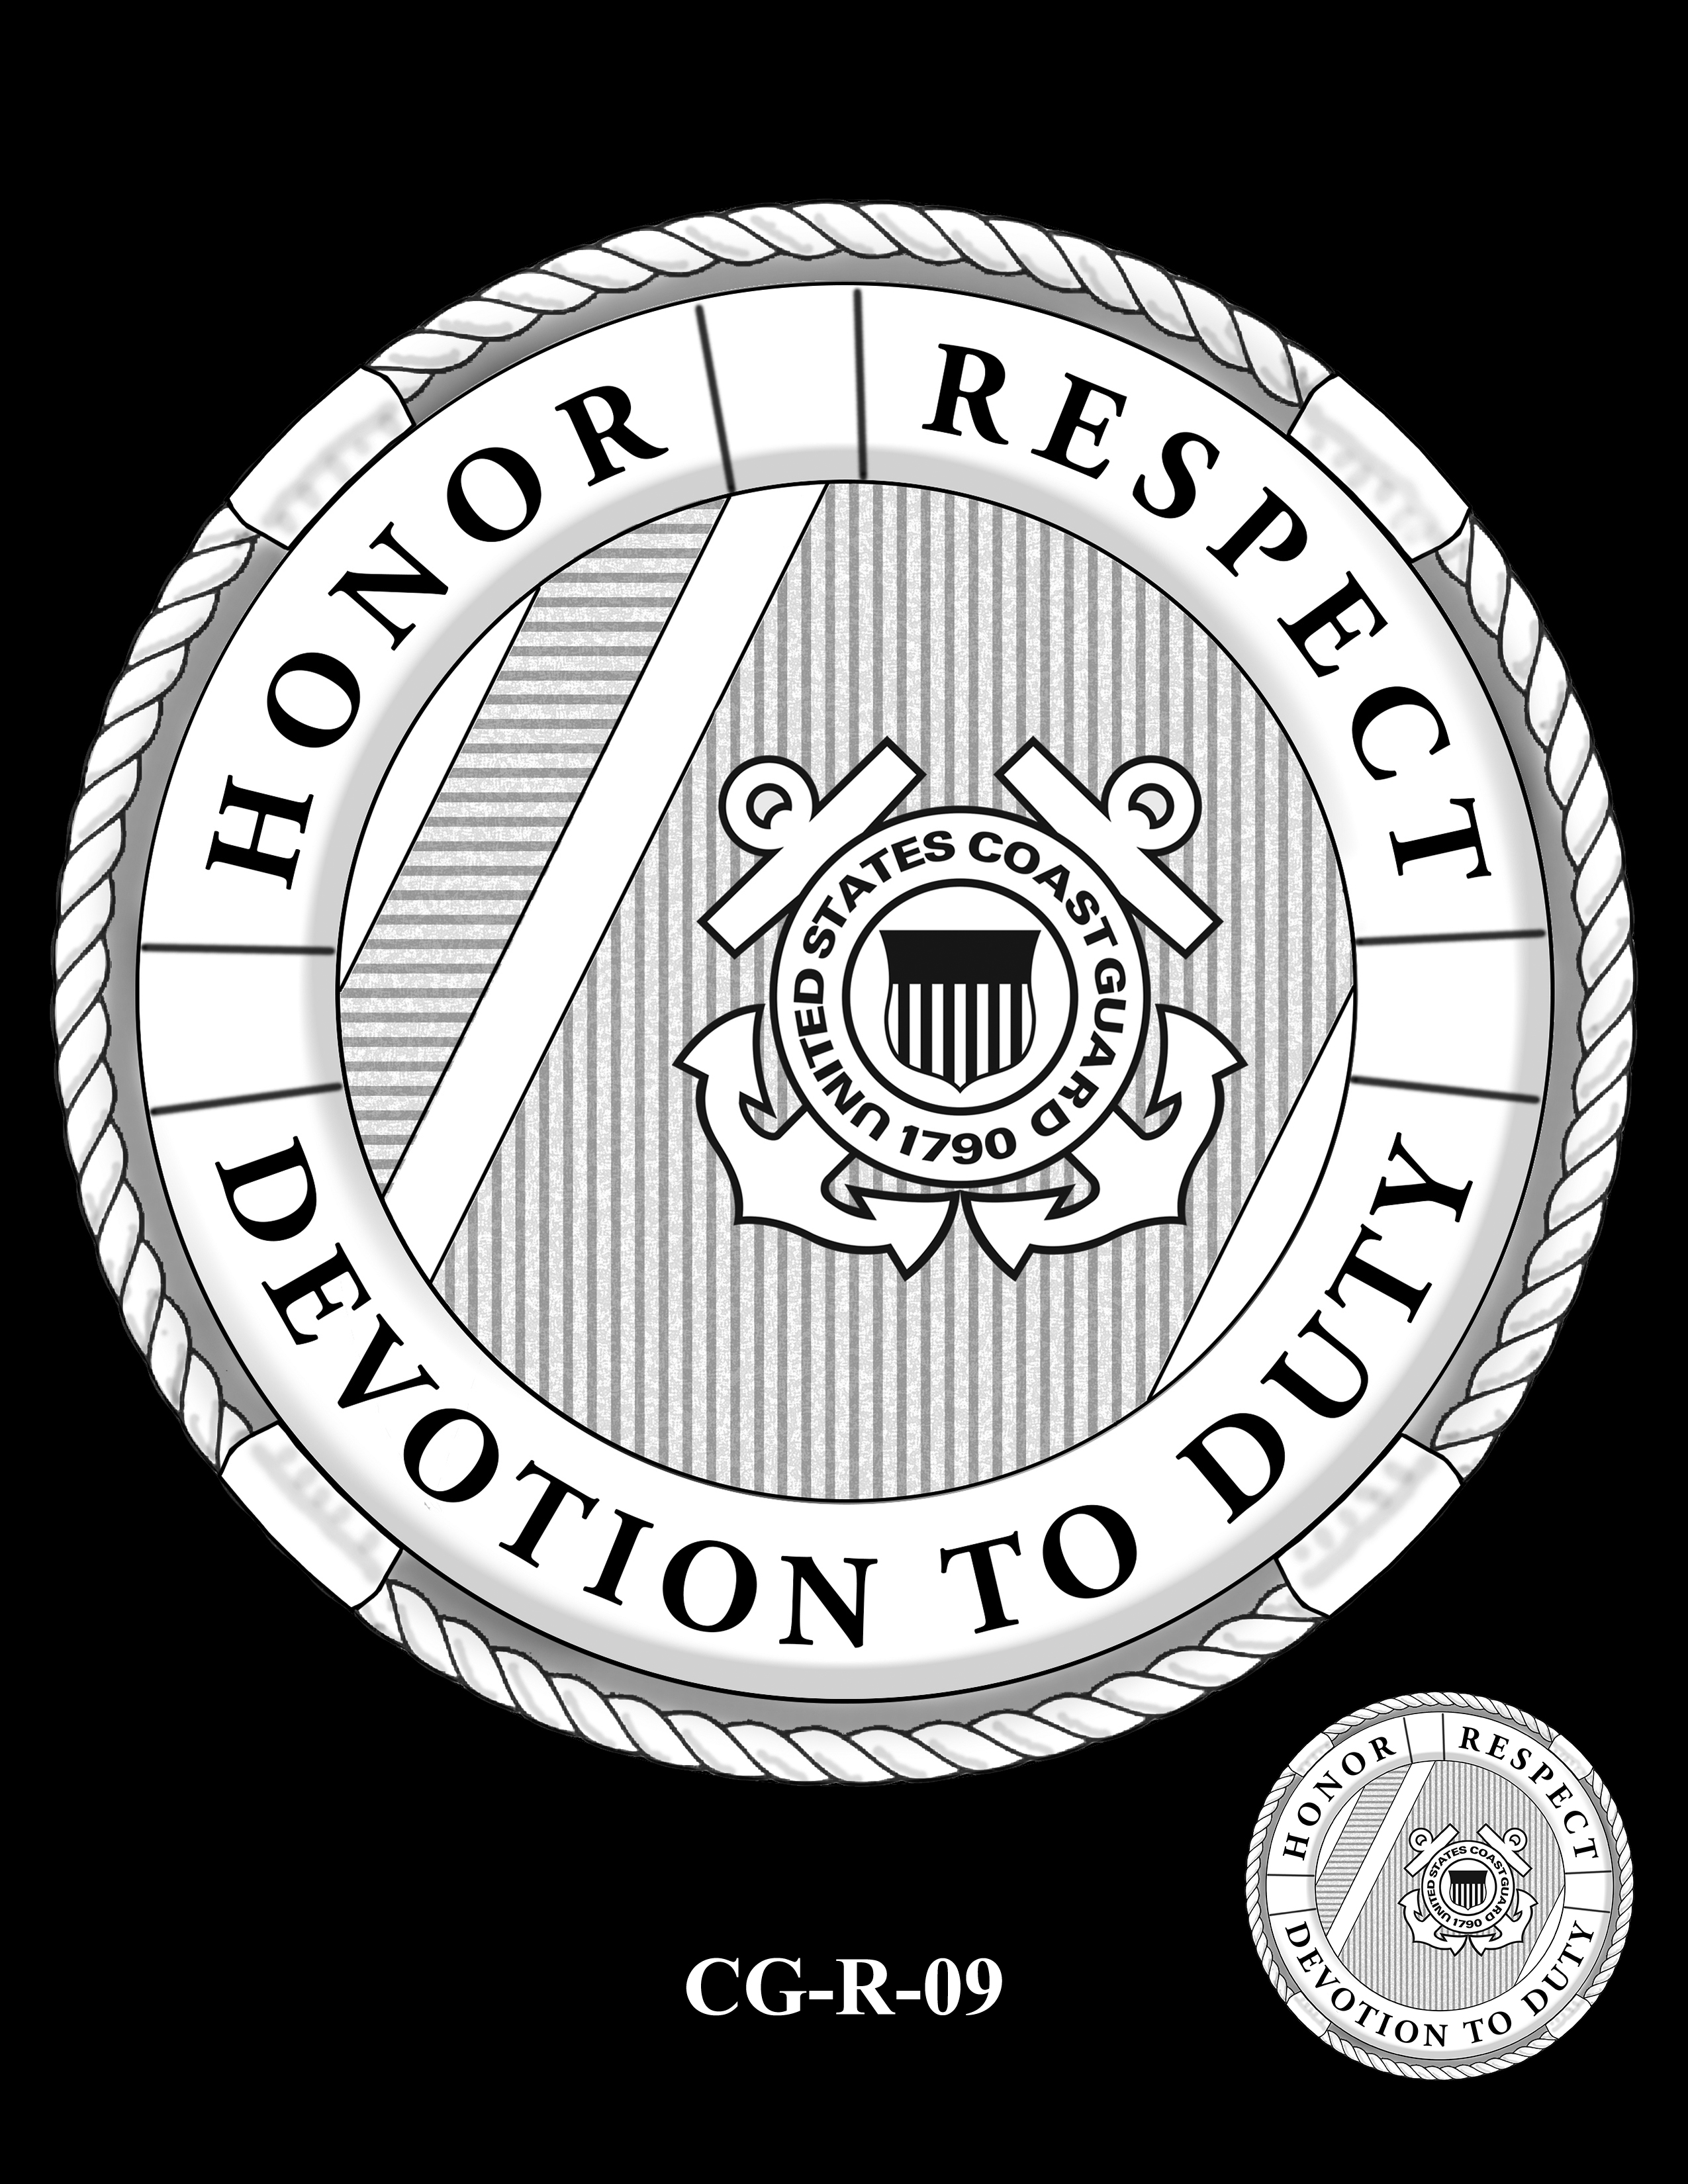 CG-R-09 -- Armed Forces Medal - Coast Guard